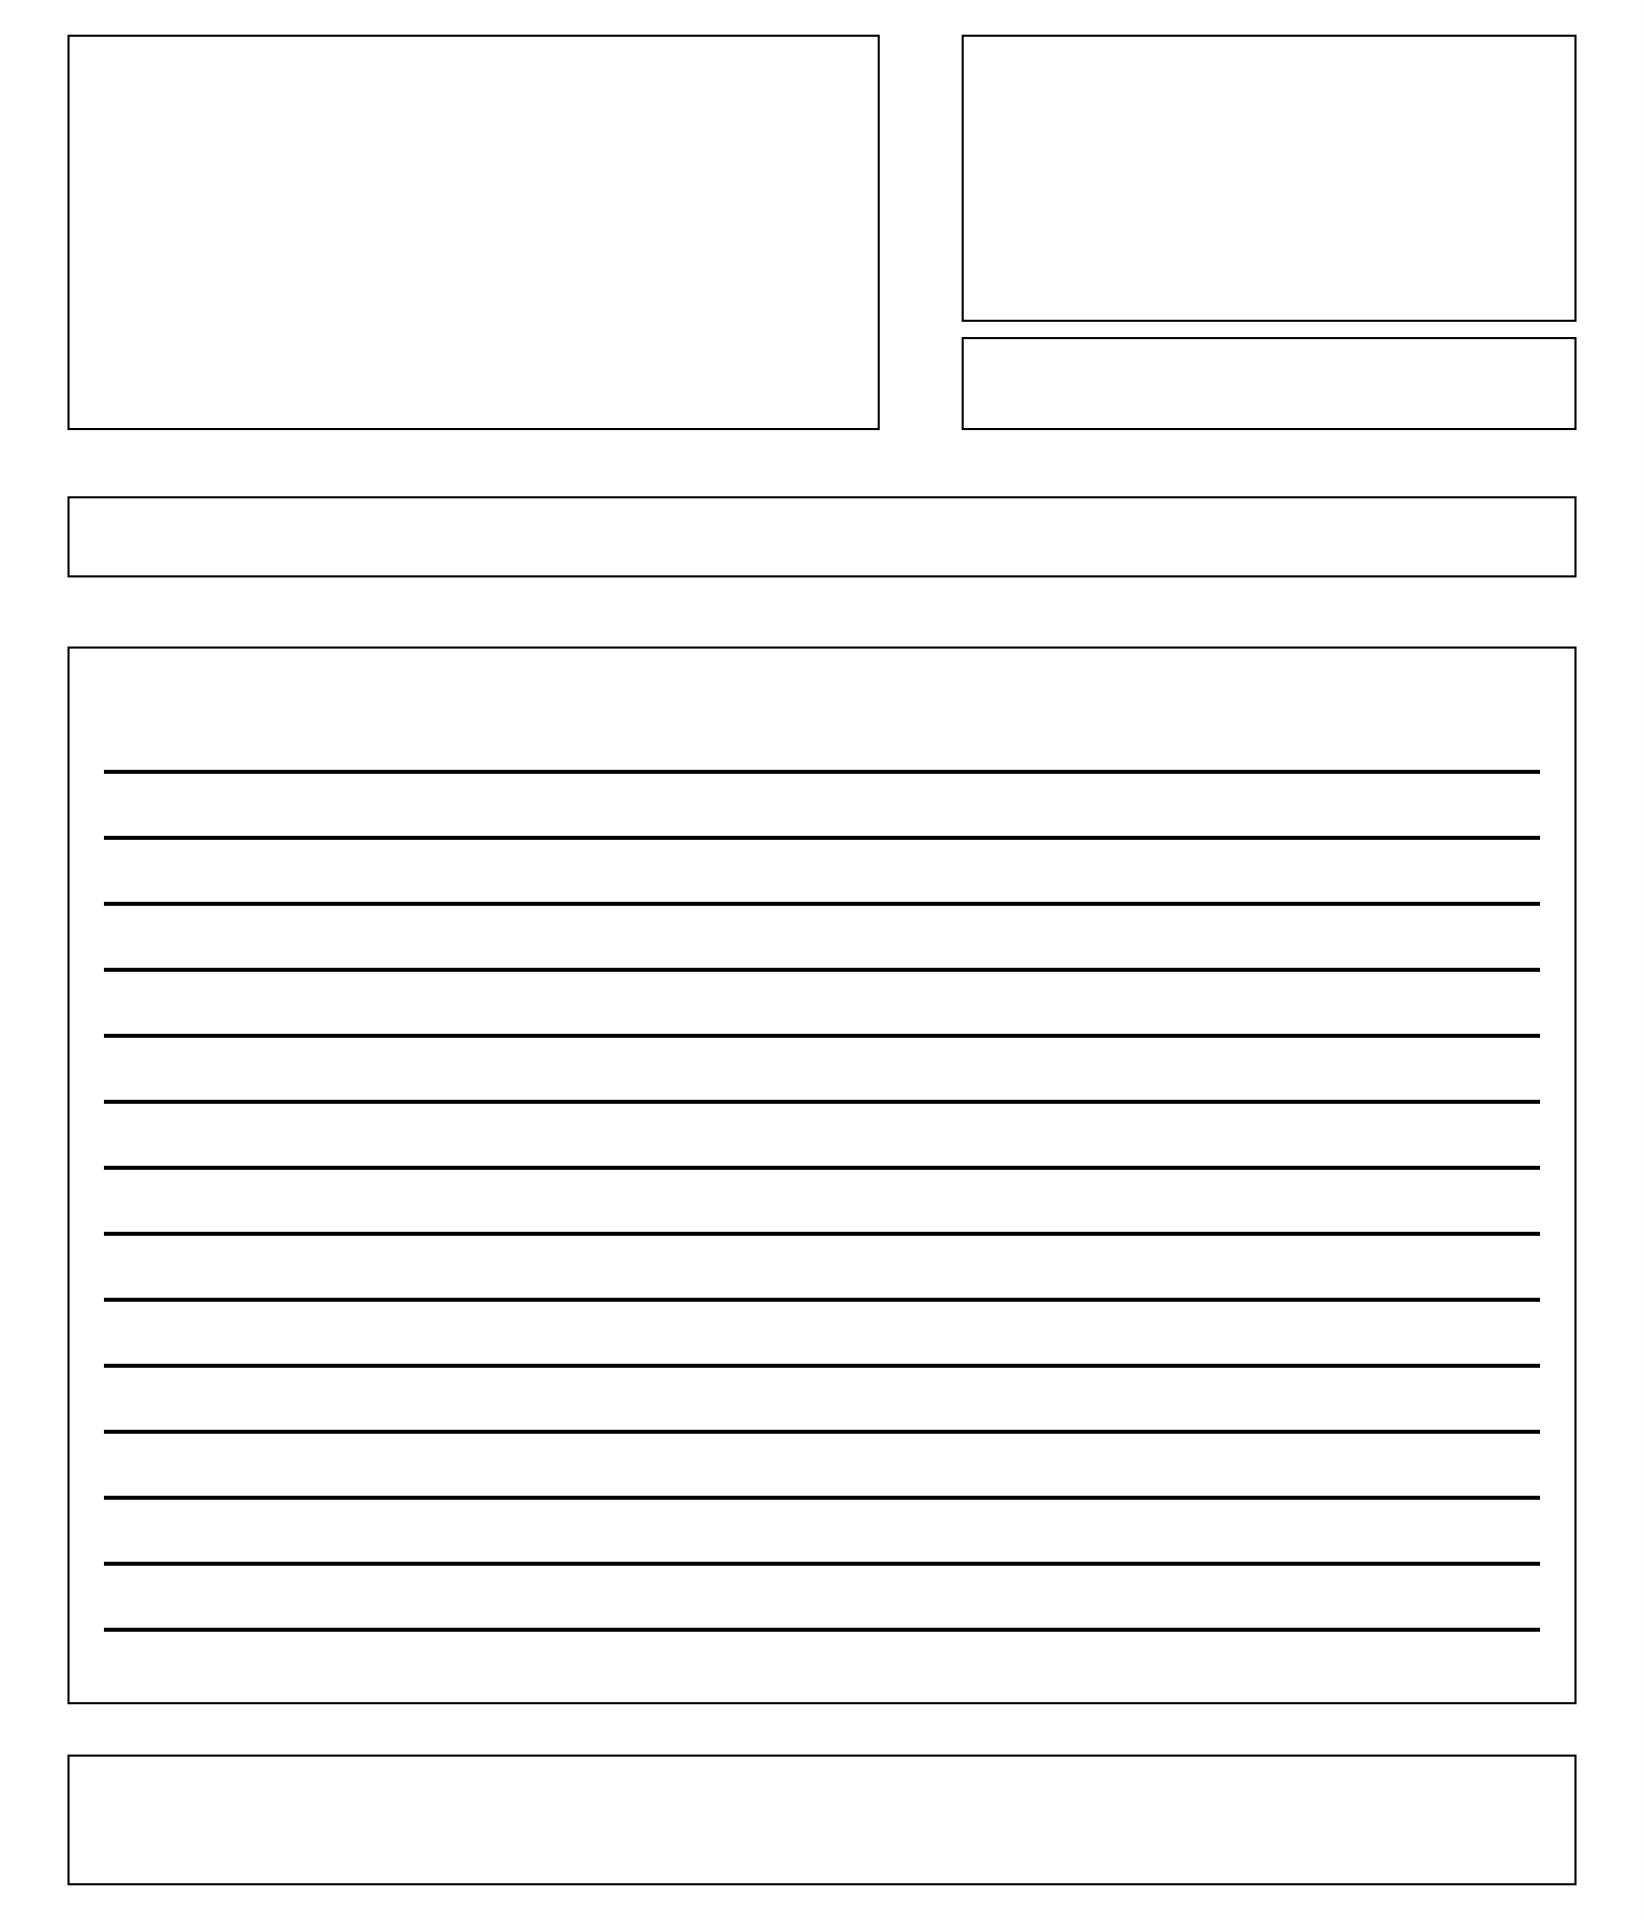 photograph relating to Letter Writing Template for Kids named Blank Composing Template. perfect pictures of blank handwriting